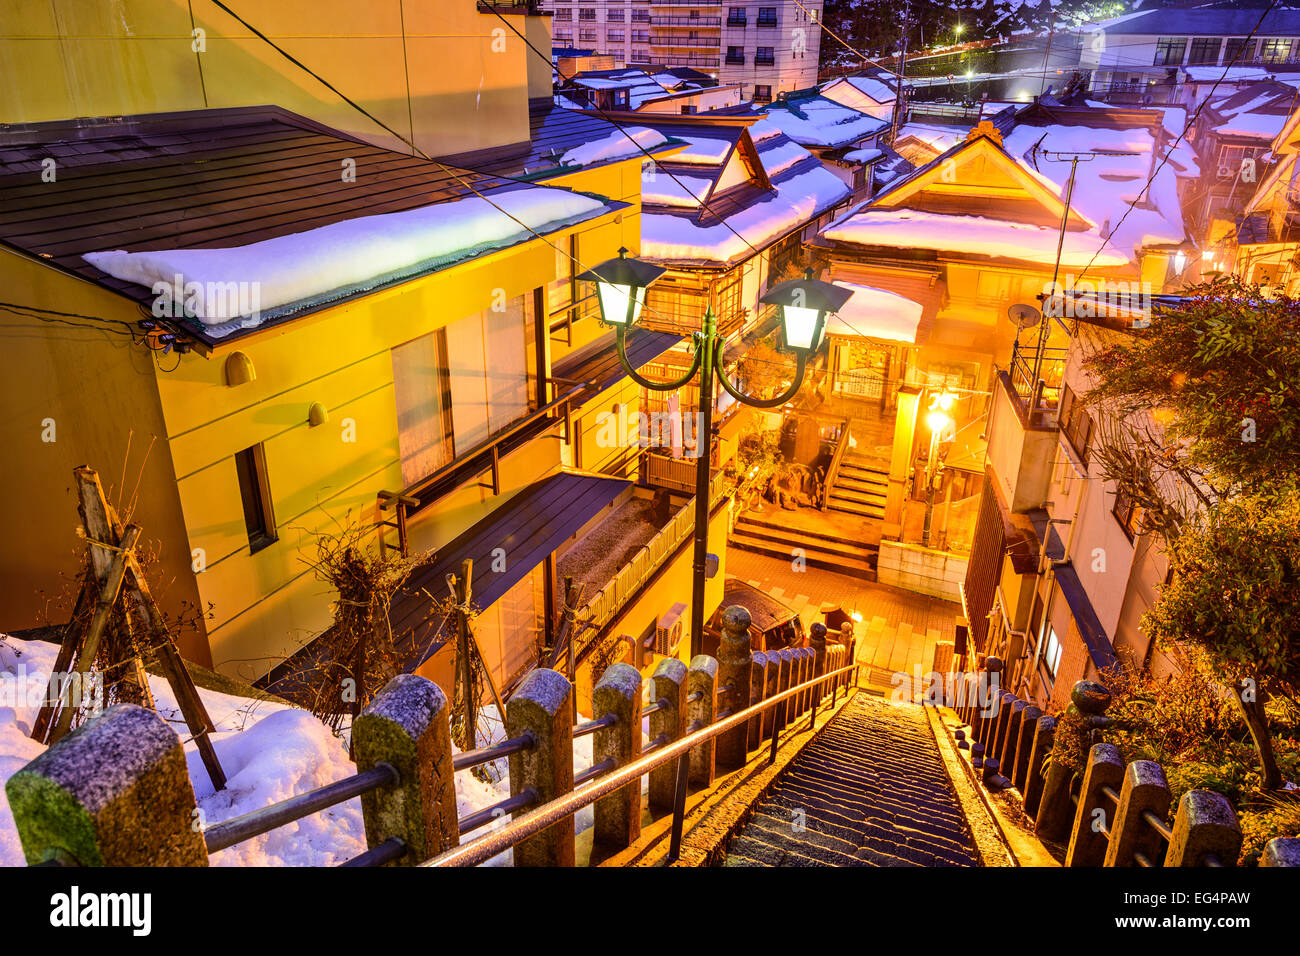 Shibu Onsen, Nagano, Japan old alley staircase view at night. - Stock Image